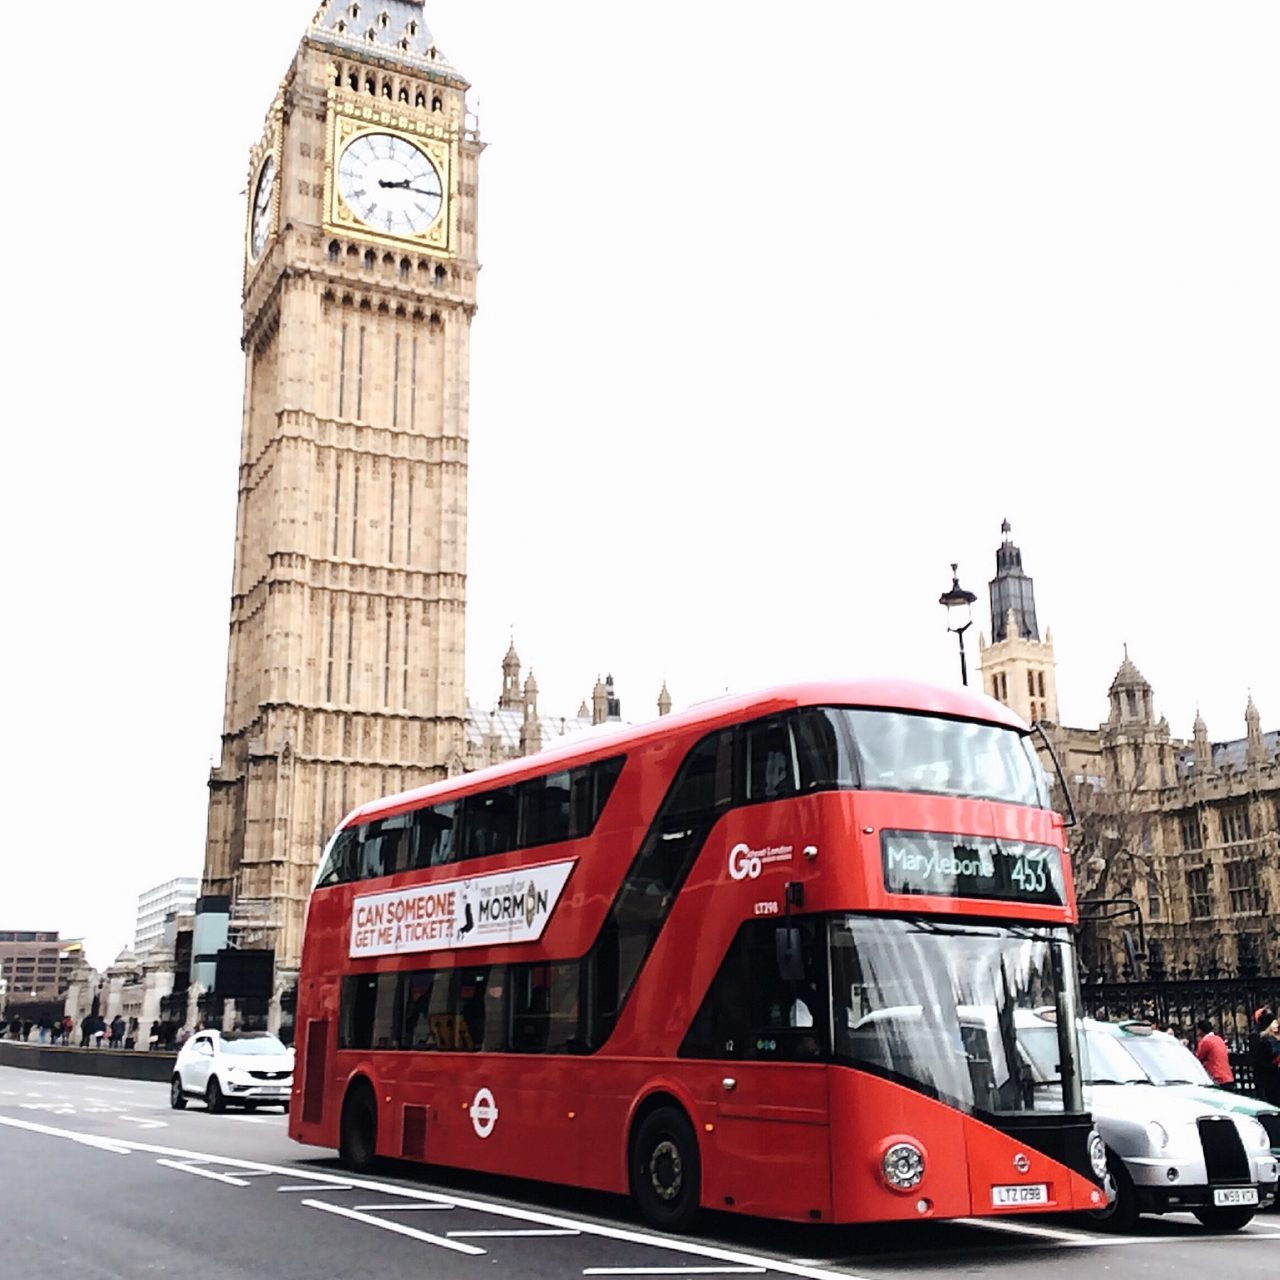 Big Ben and double decker bus